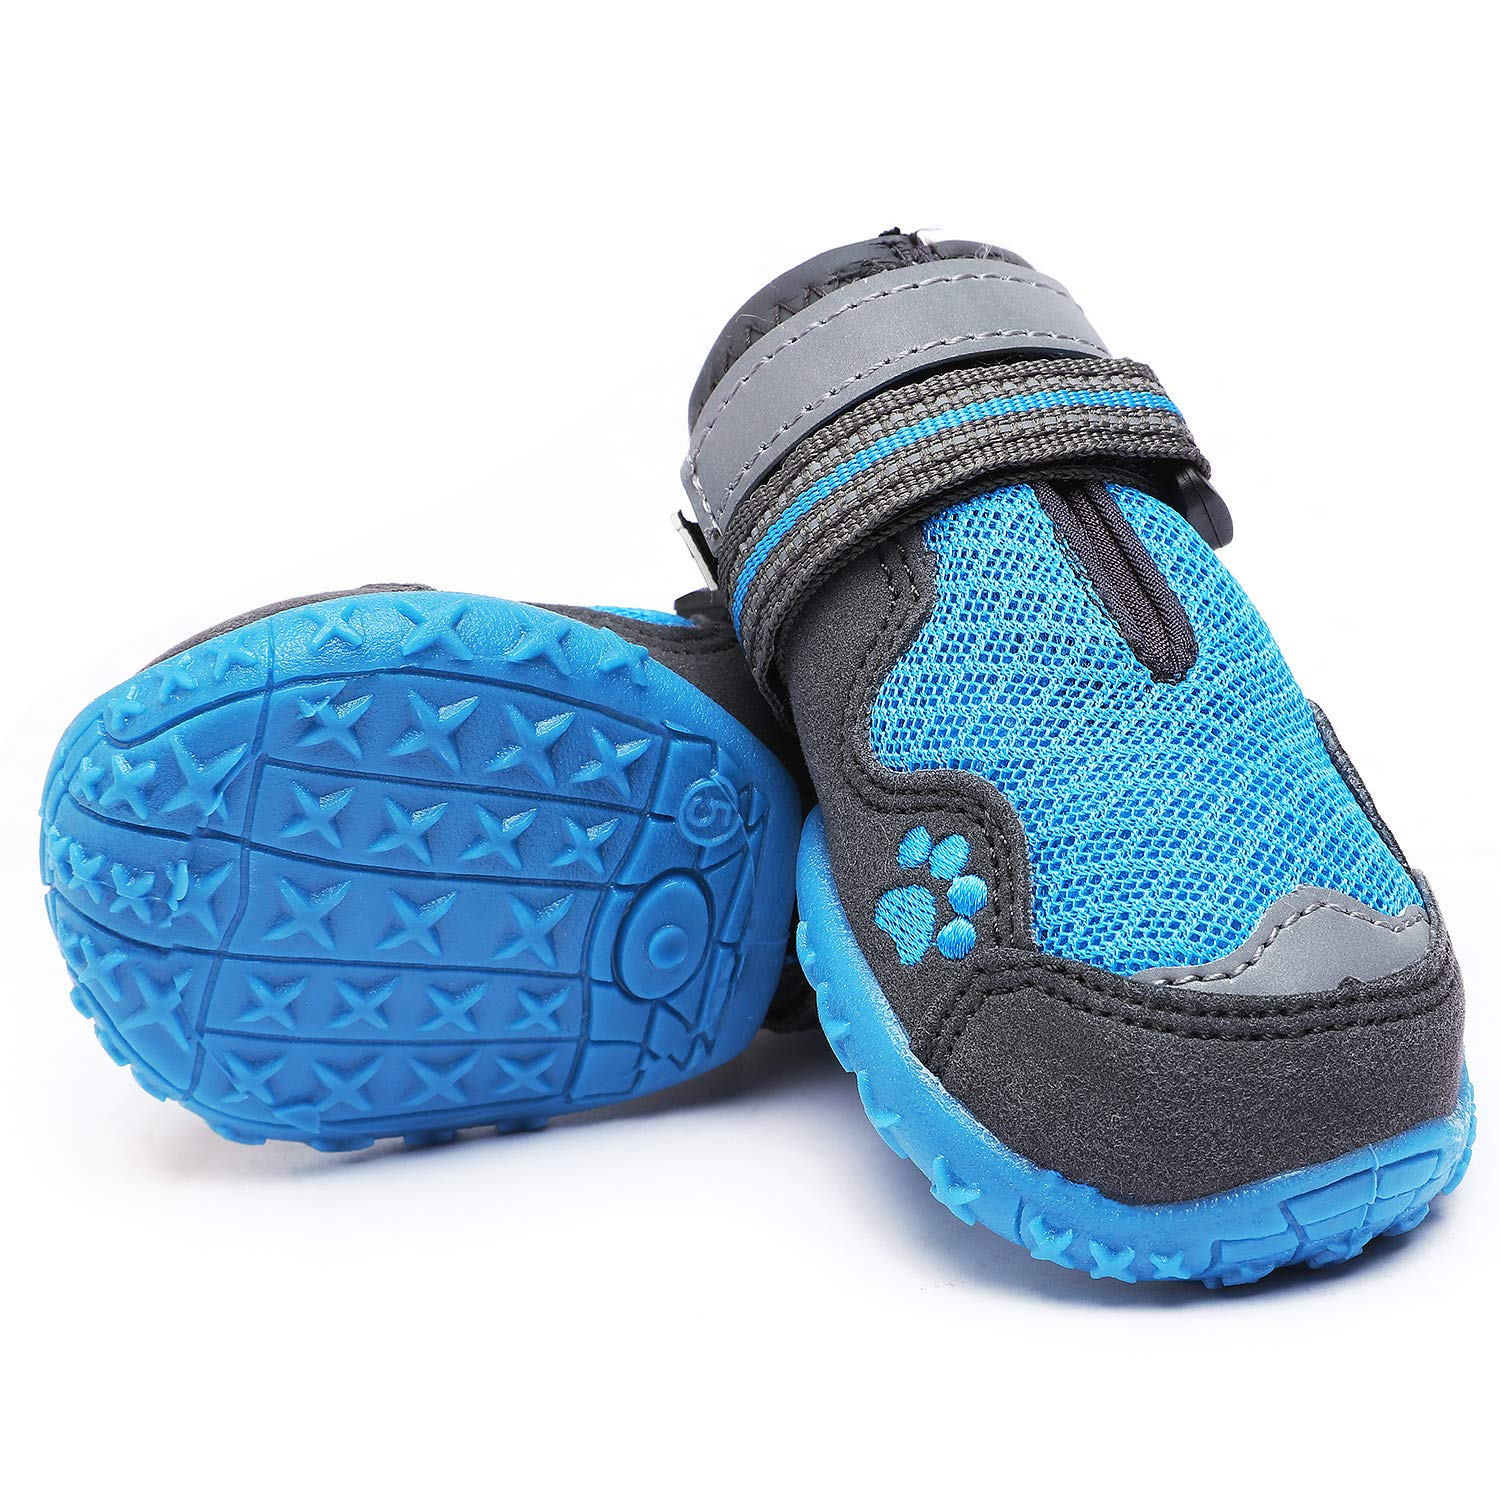 HiPaw Breathable Dog Boots Nonslip Rubber Sole for Hot Pavement Summer Paw Protector for Large Medium Dog by HiPaw